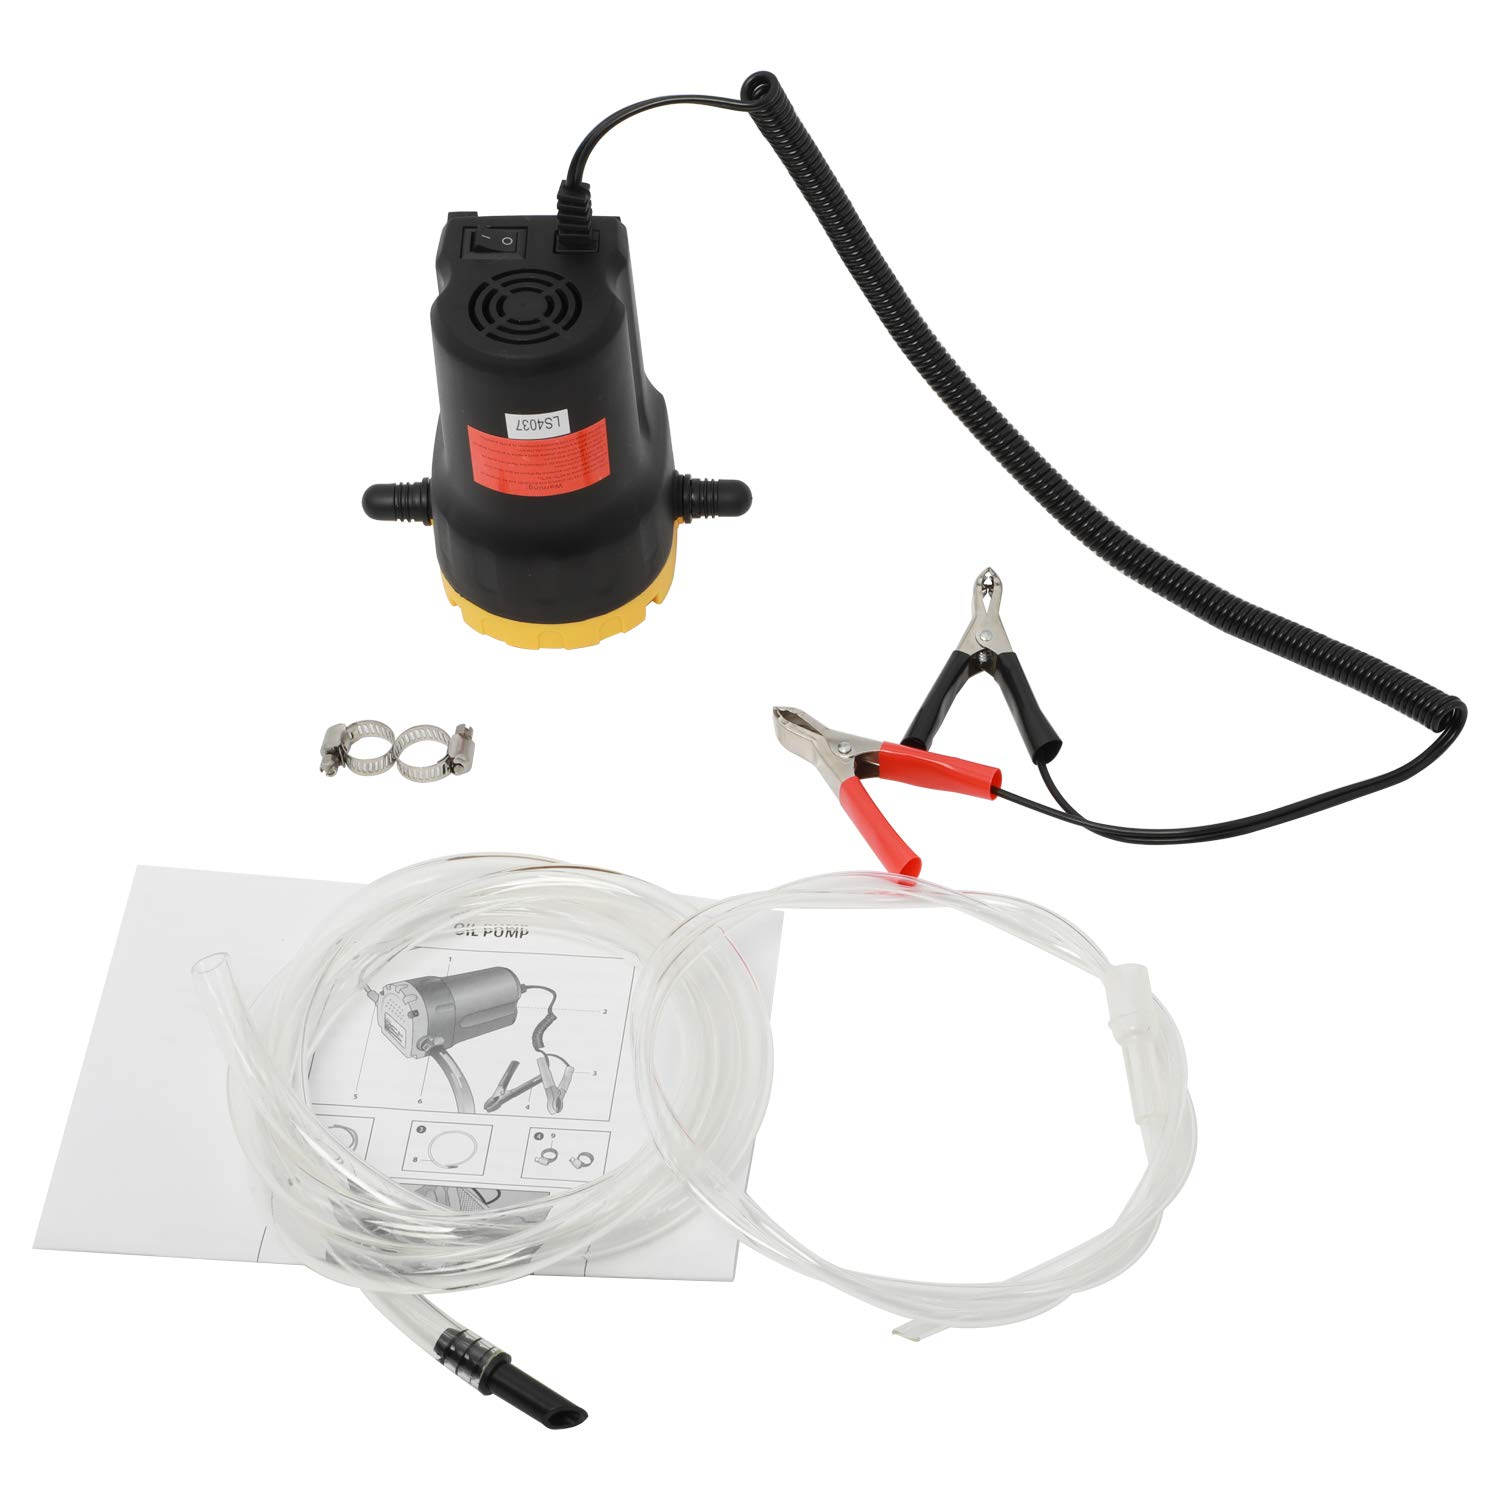 HYDDNice 12V 60W Oil Change Pump Extractor Diesel Extractor Scavenge Suction Transfer Pump for Truck RV Boat ATV